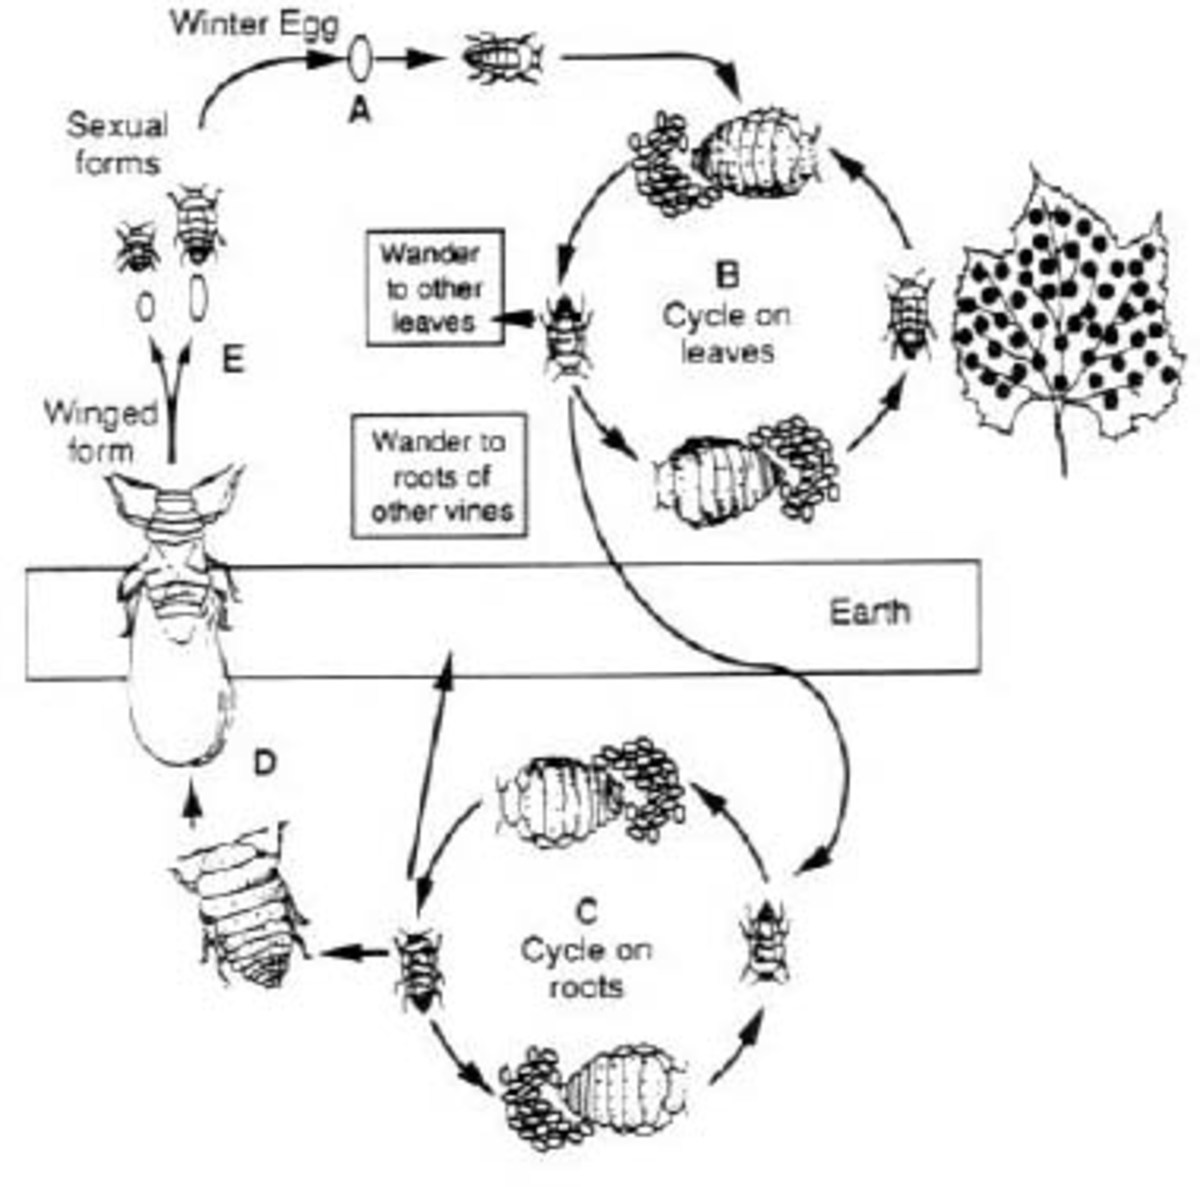 The life cycle of Phylloxera